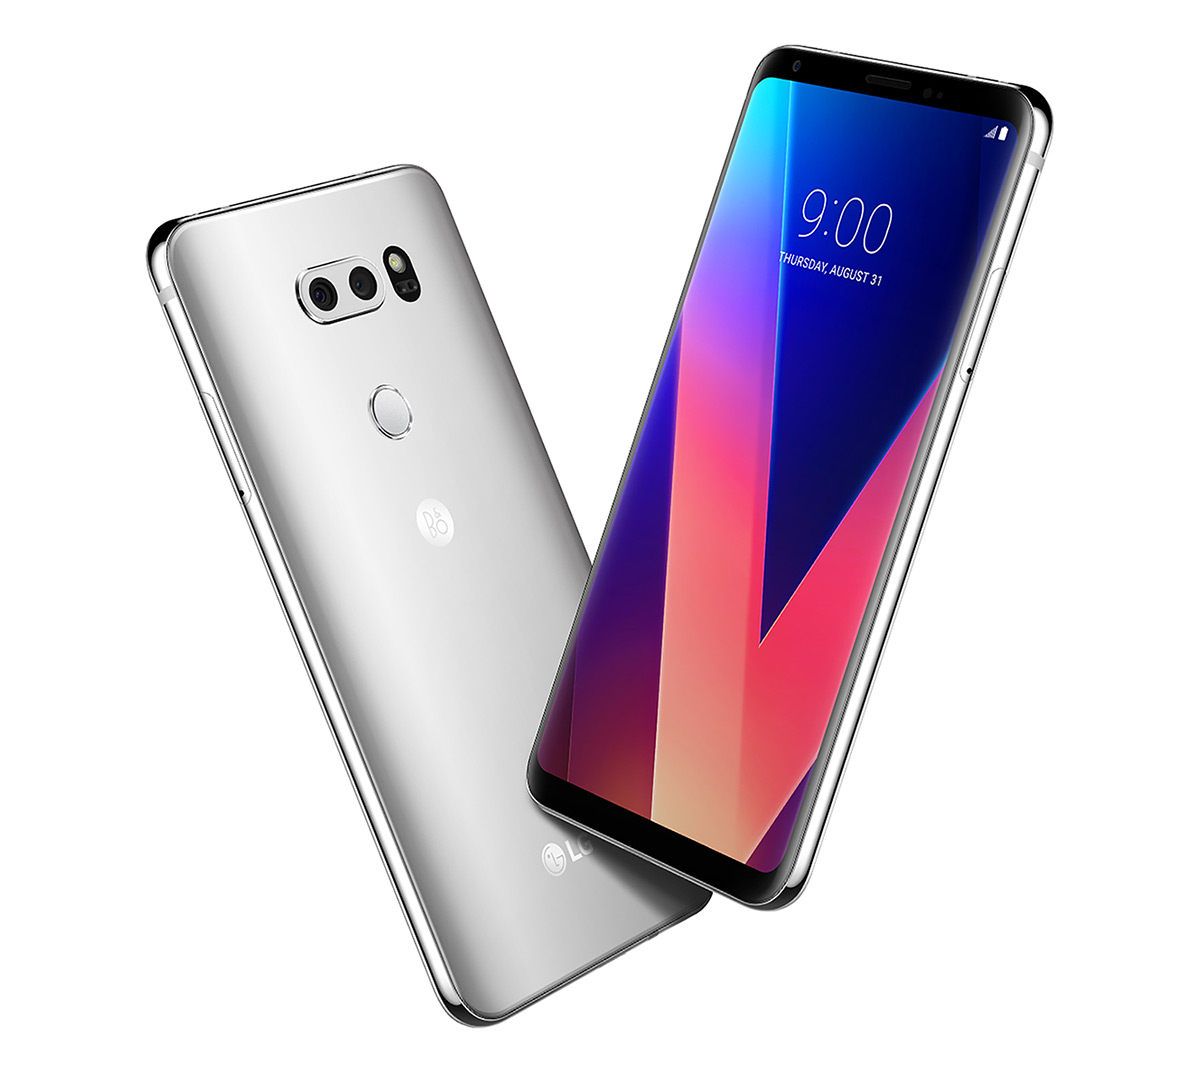 lg v30 debuts with 6 inch oled display launching this fall at t rh tmonews com Upcoming T-Mobile Phones Upcoming T-Mobile Phones